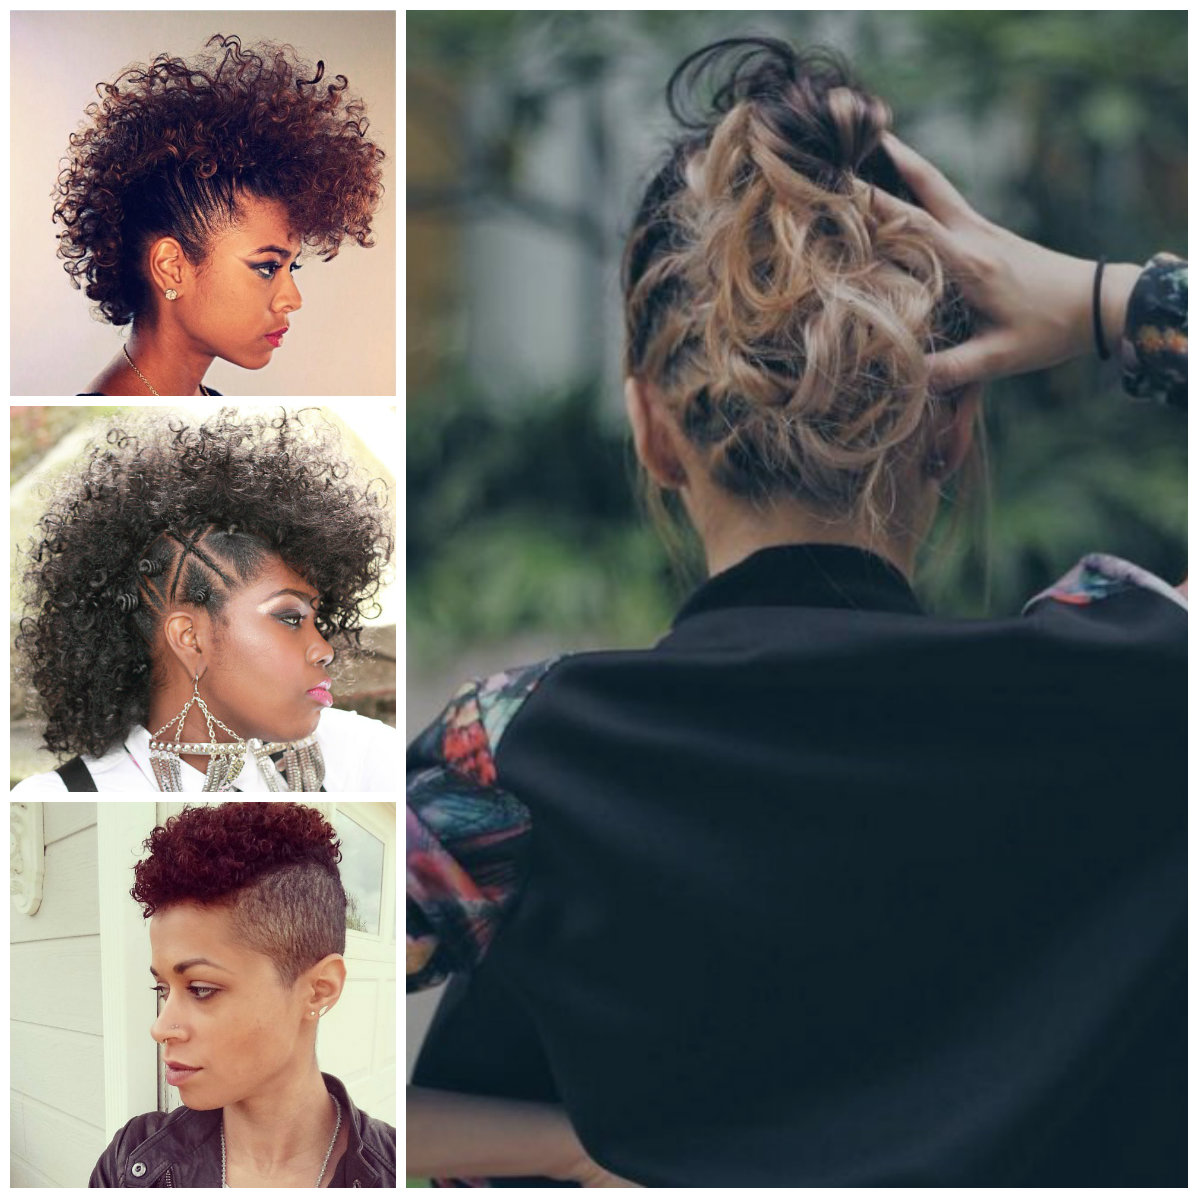 Curly Mohawk Hairstyles for Women 2017 | 2019 Haircuts, Hairstyles ...